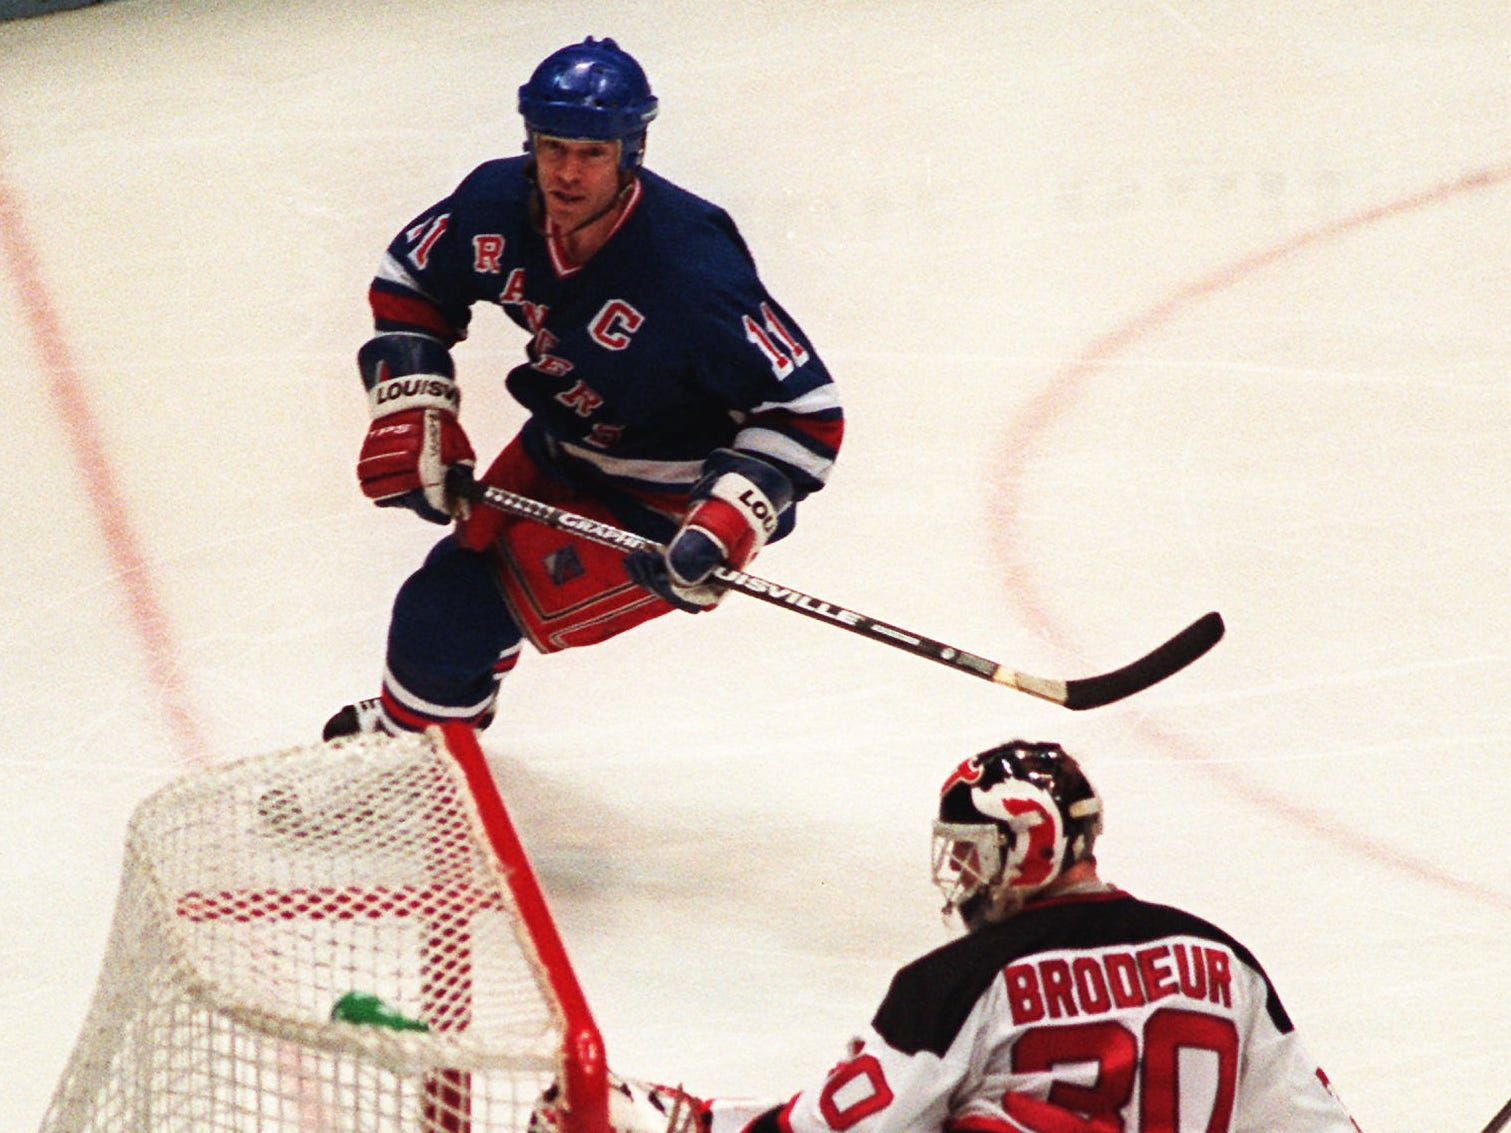 New York Rangers' Mark Messier puts the puck in the net past New Jersey Devils' goaltender Martin Brodeur (30) during the third period at Meadowlands Arena in East Rutherford, N.J., May 25, 1994. Messier scored three third period goals to give the Rangers a 4-2 win and to tie the Eastern Conference finals at three games a piece.